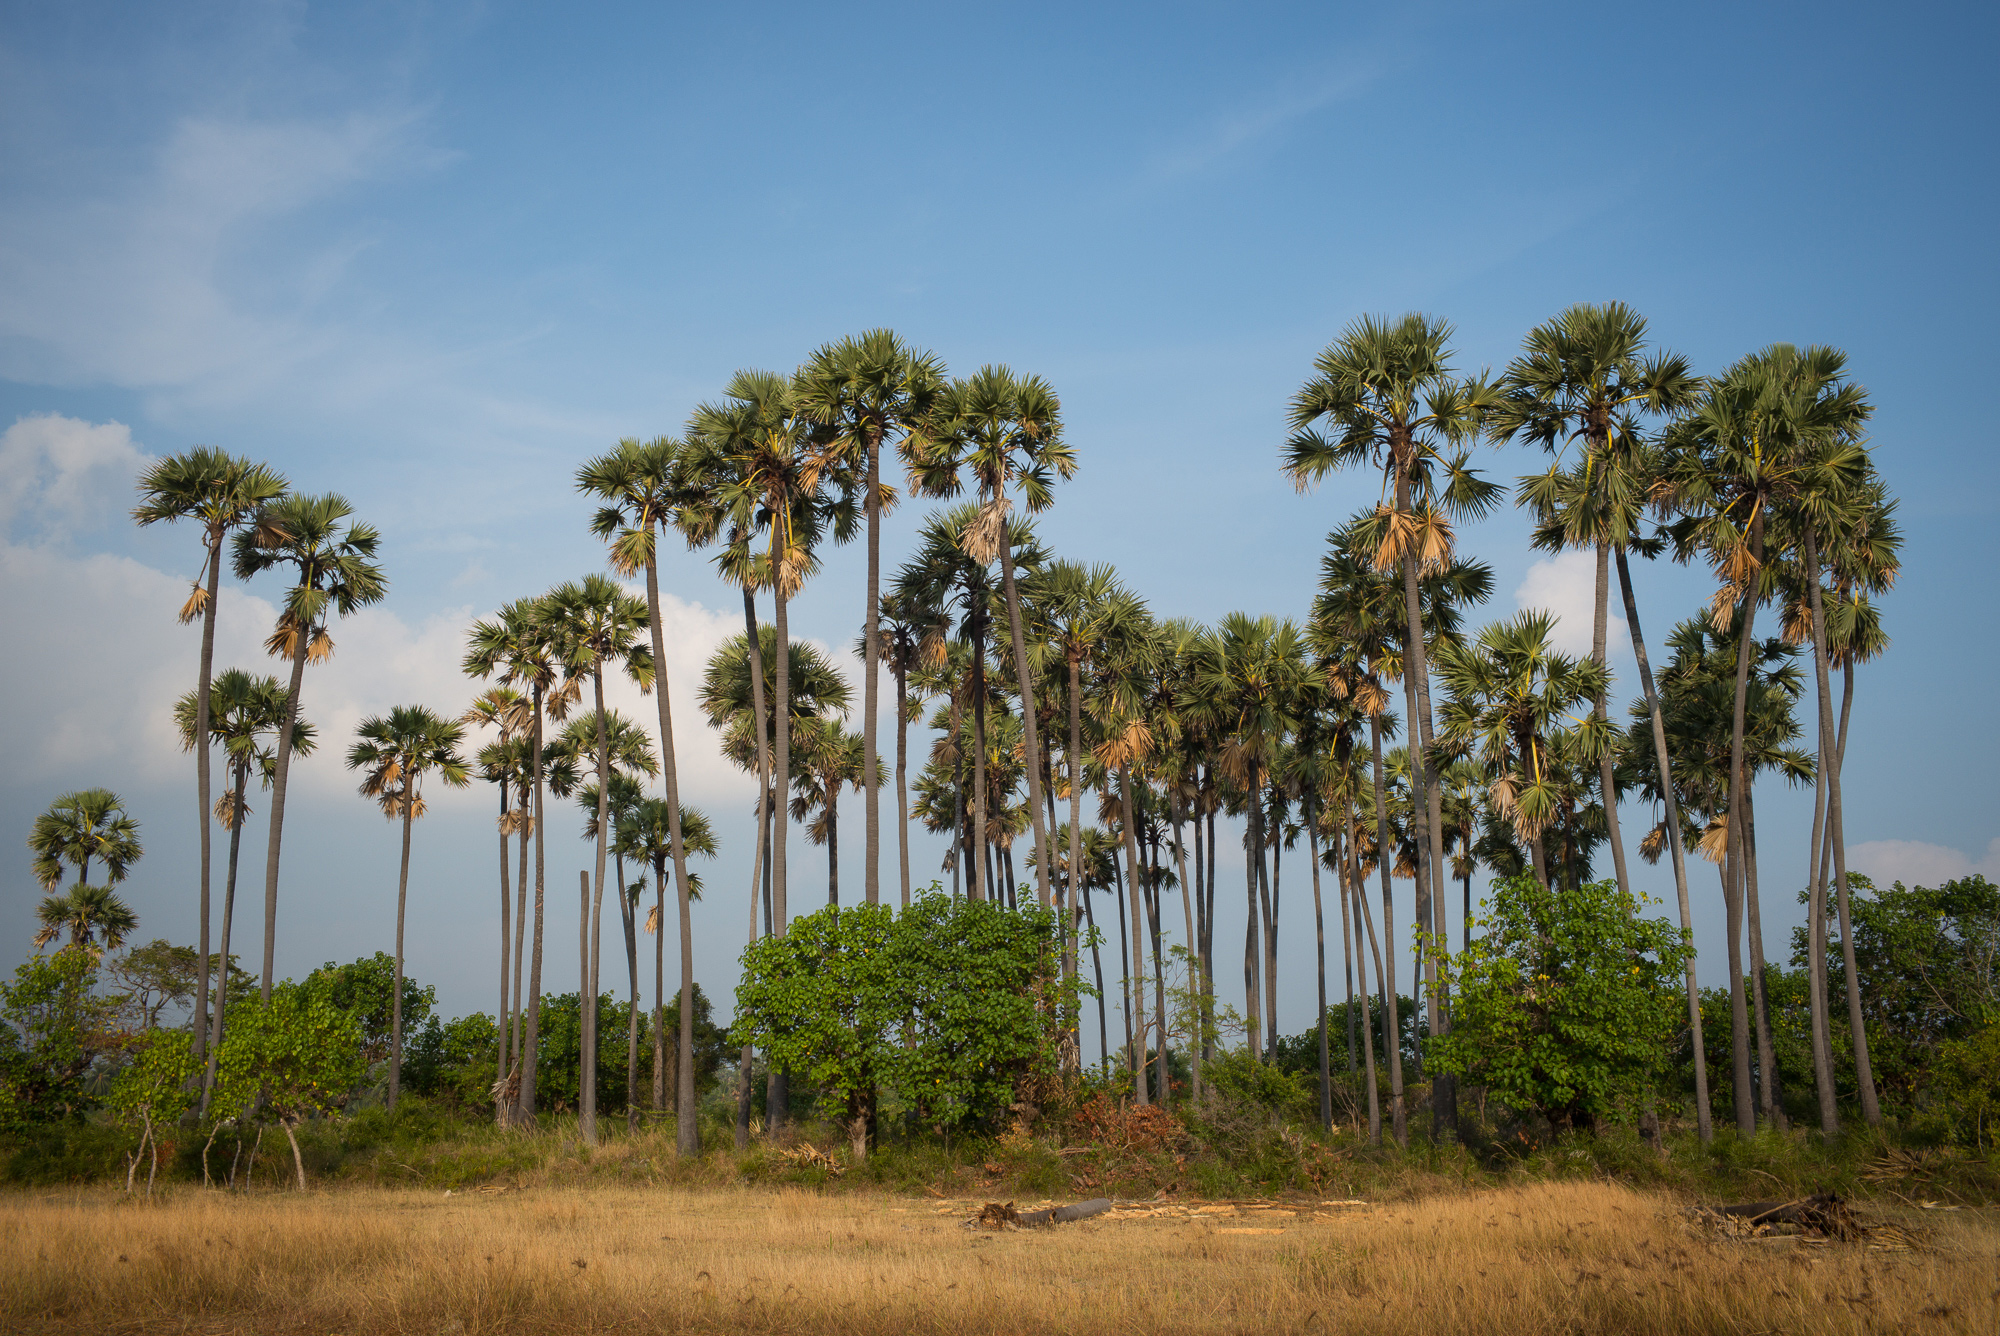 Palmyra palms are the symbol of Tamil culture as well as a source for products from fruit to roofing, and the mainstay of the Tamil toddy tappers of northern Sri Lanka.